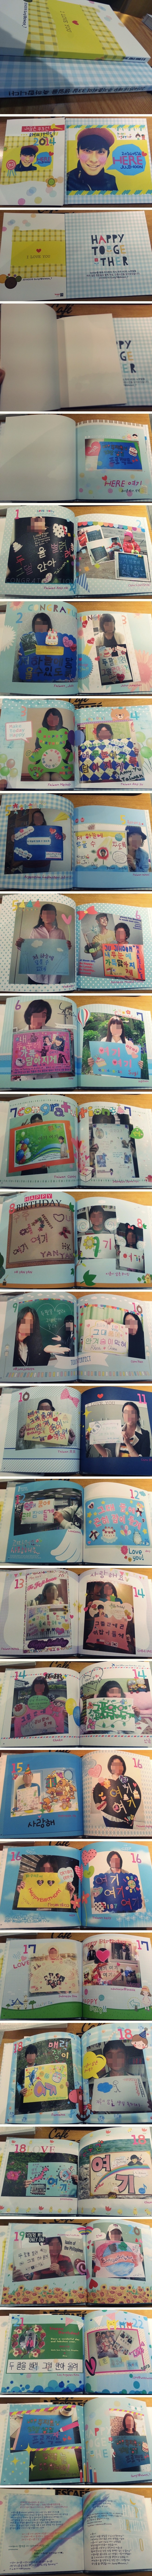 2014-jjh-birthday-book-ss